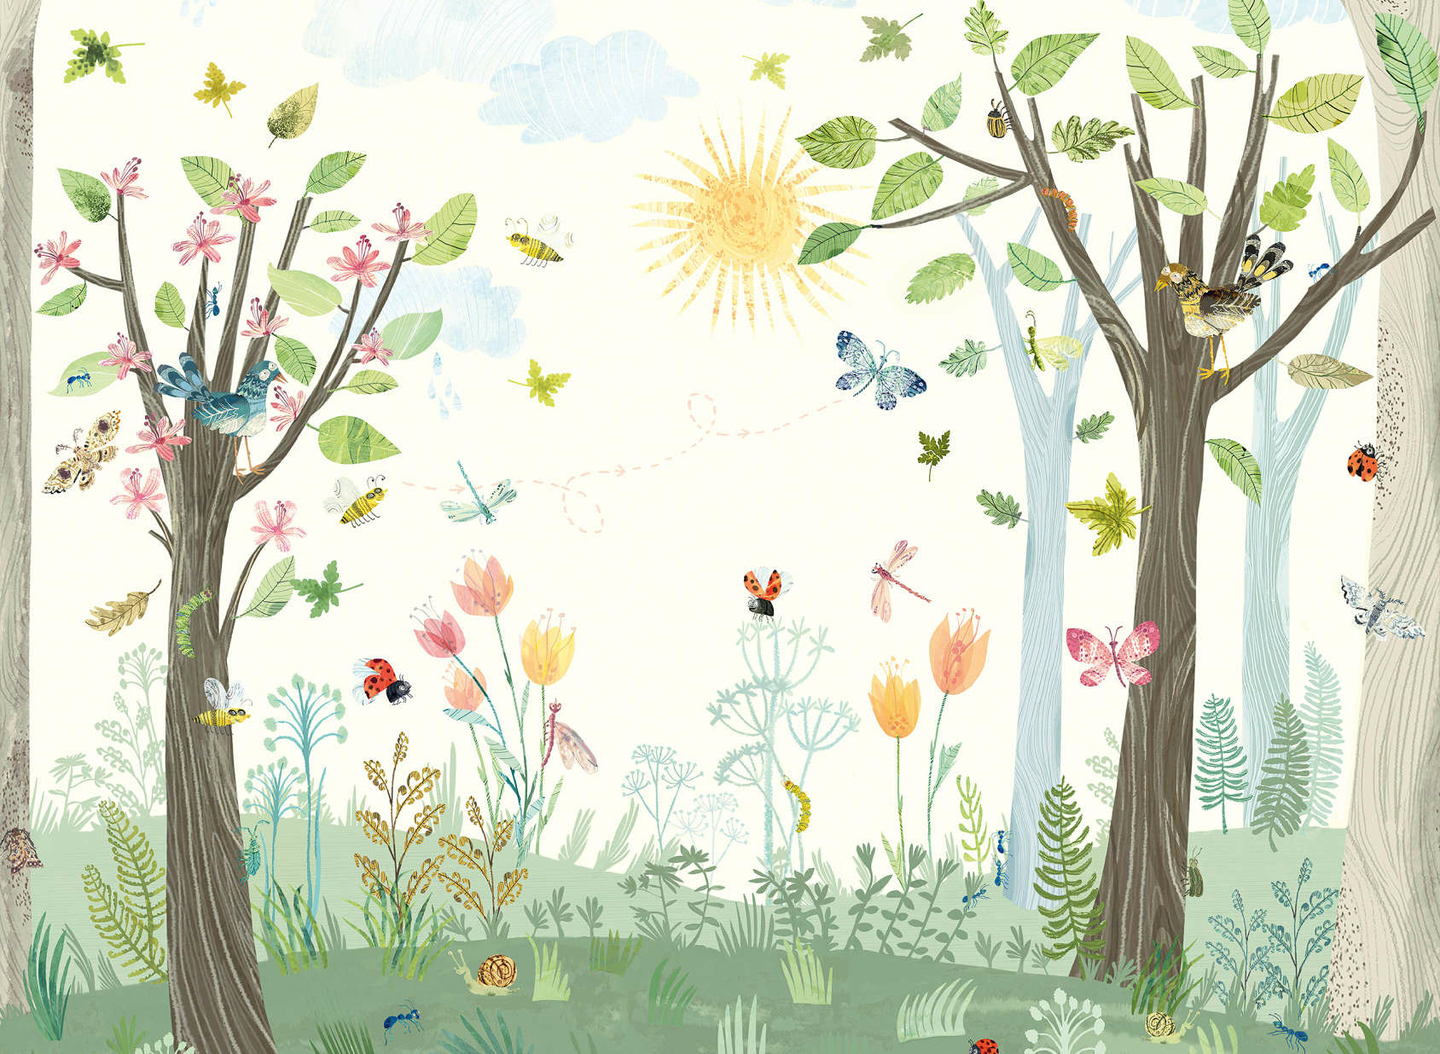 W575-01-busy-buzzy-wall-mural-papier-peint-enfant-foret-nature